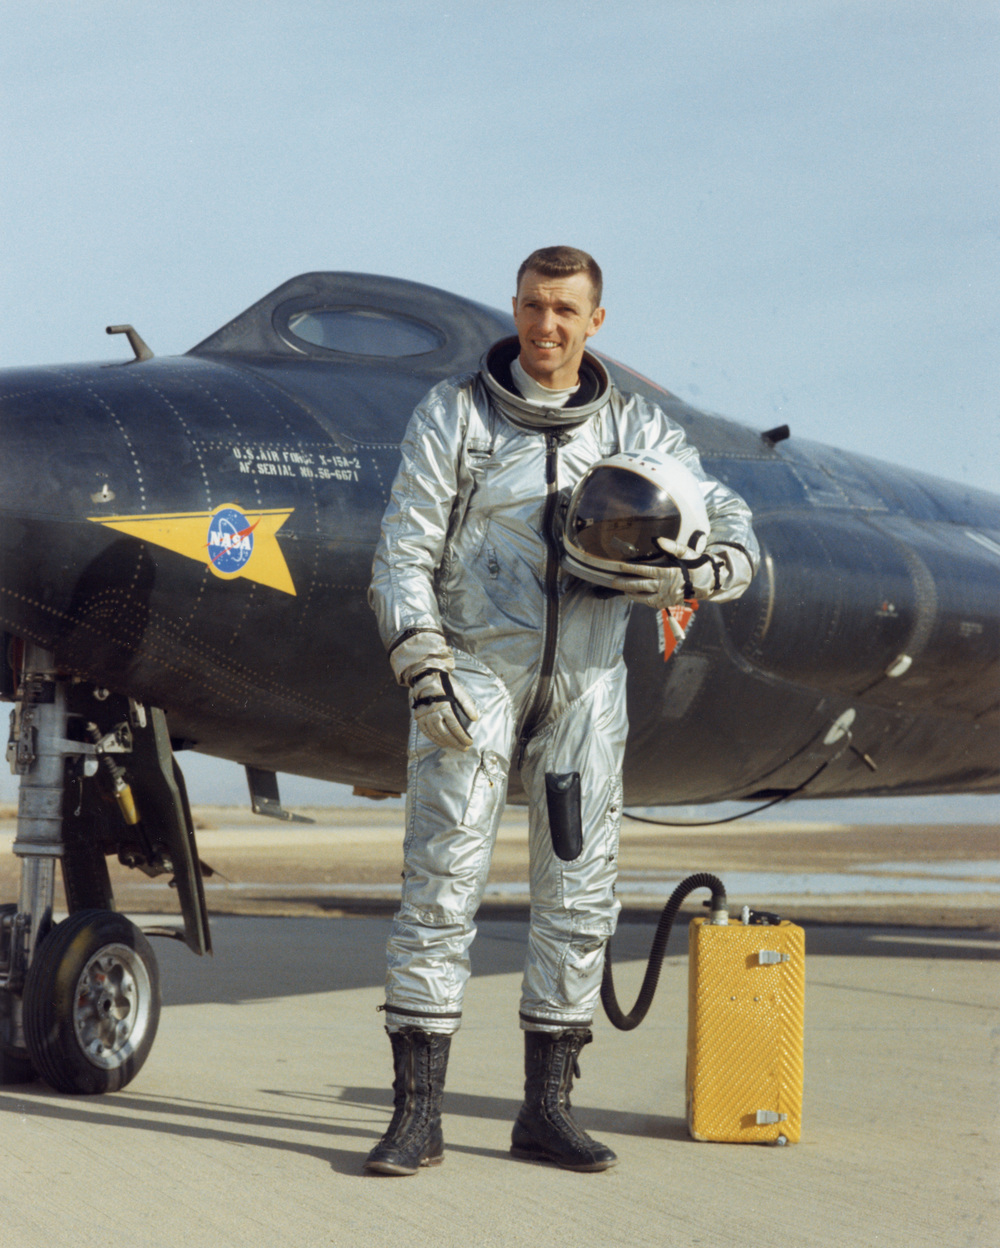 Test pilot Joe Engle in his David Clark Company pressure suit standing in front of the X-15 rocket plane.